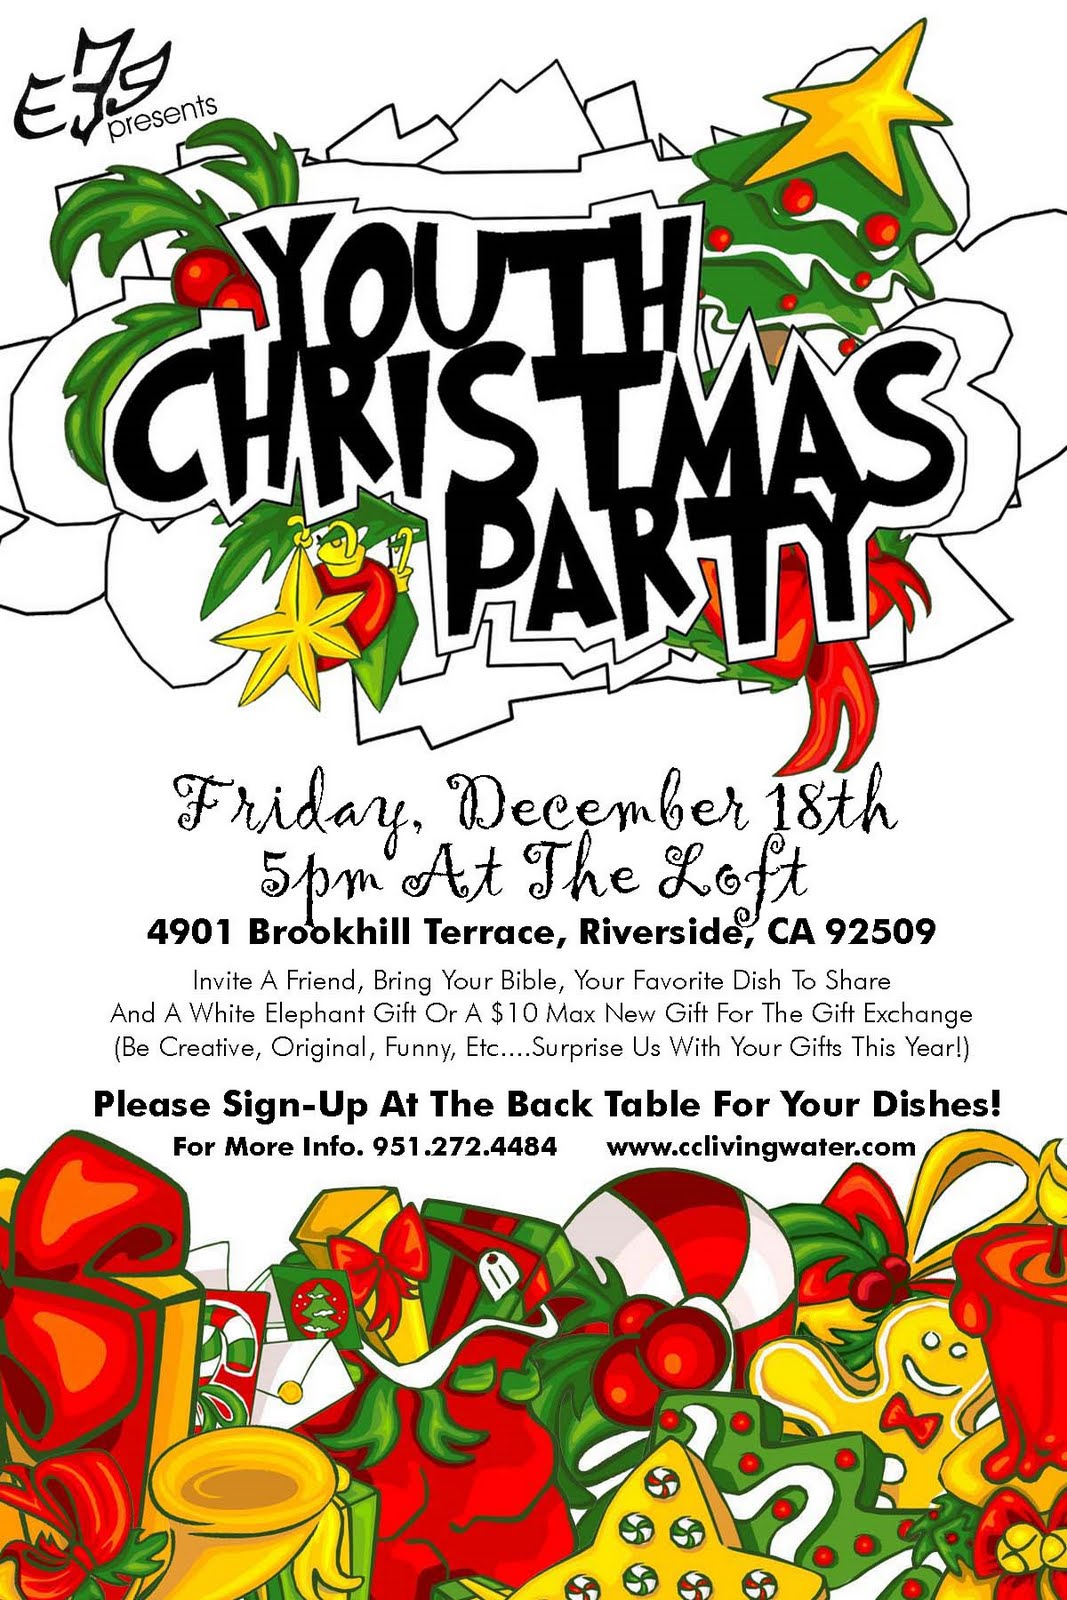 zero designs fliers posters flier for e3g youth s christmas party 2009